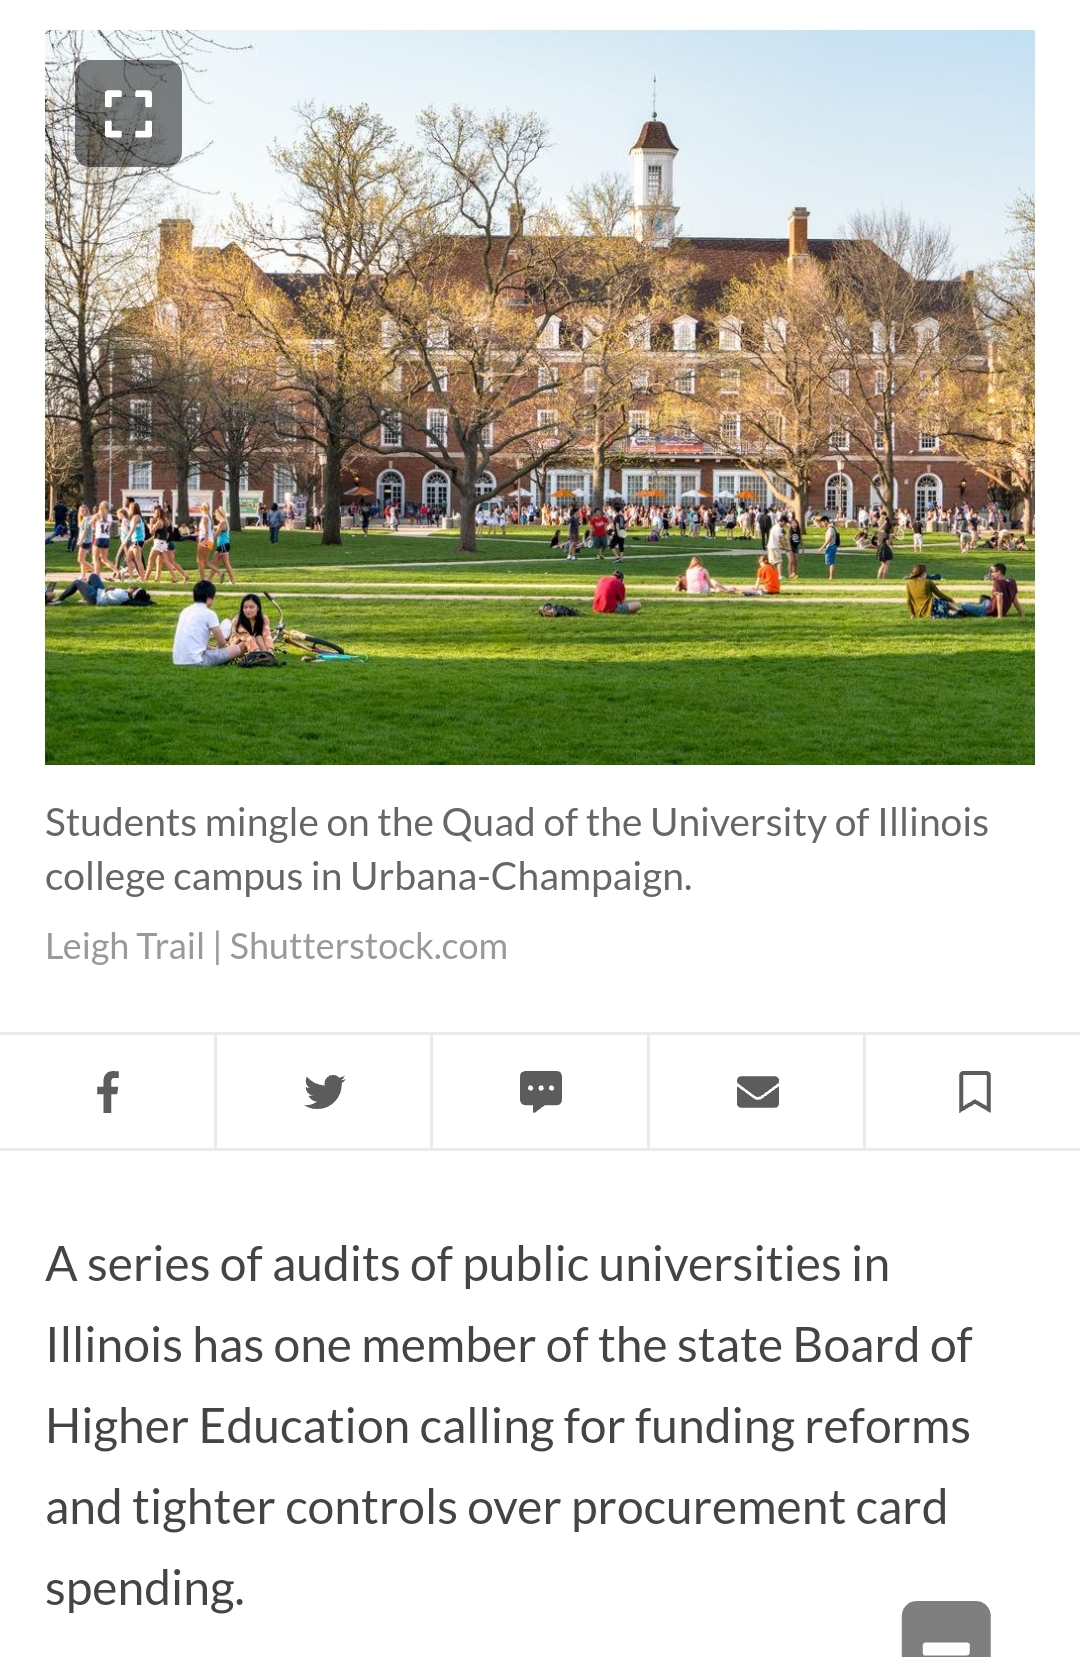 University audit raises questions